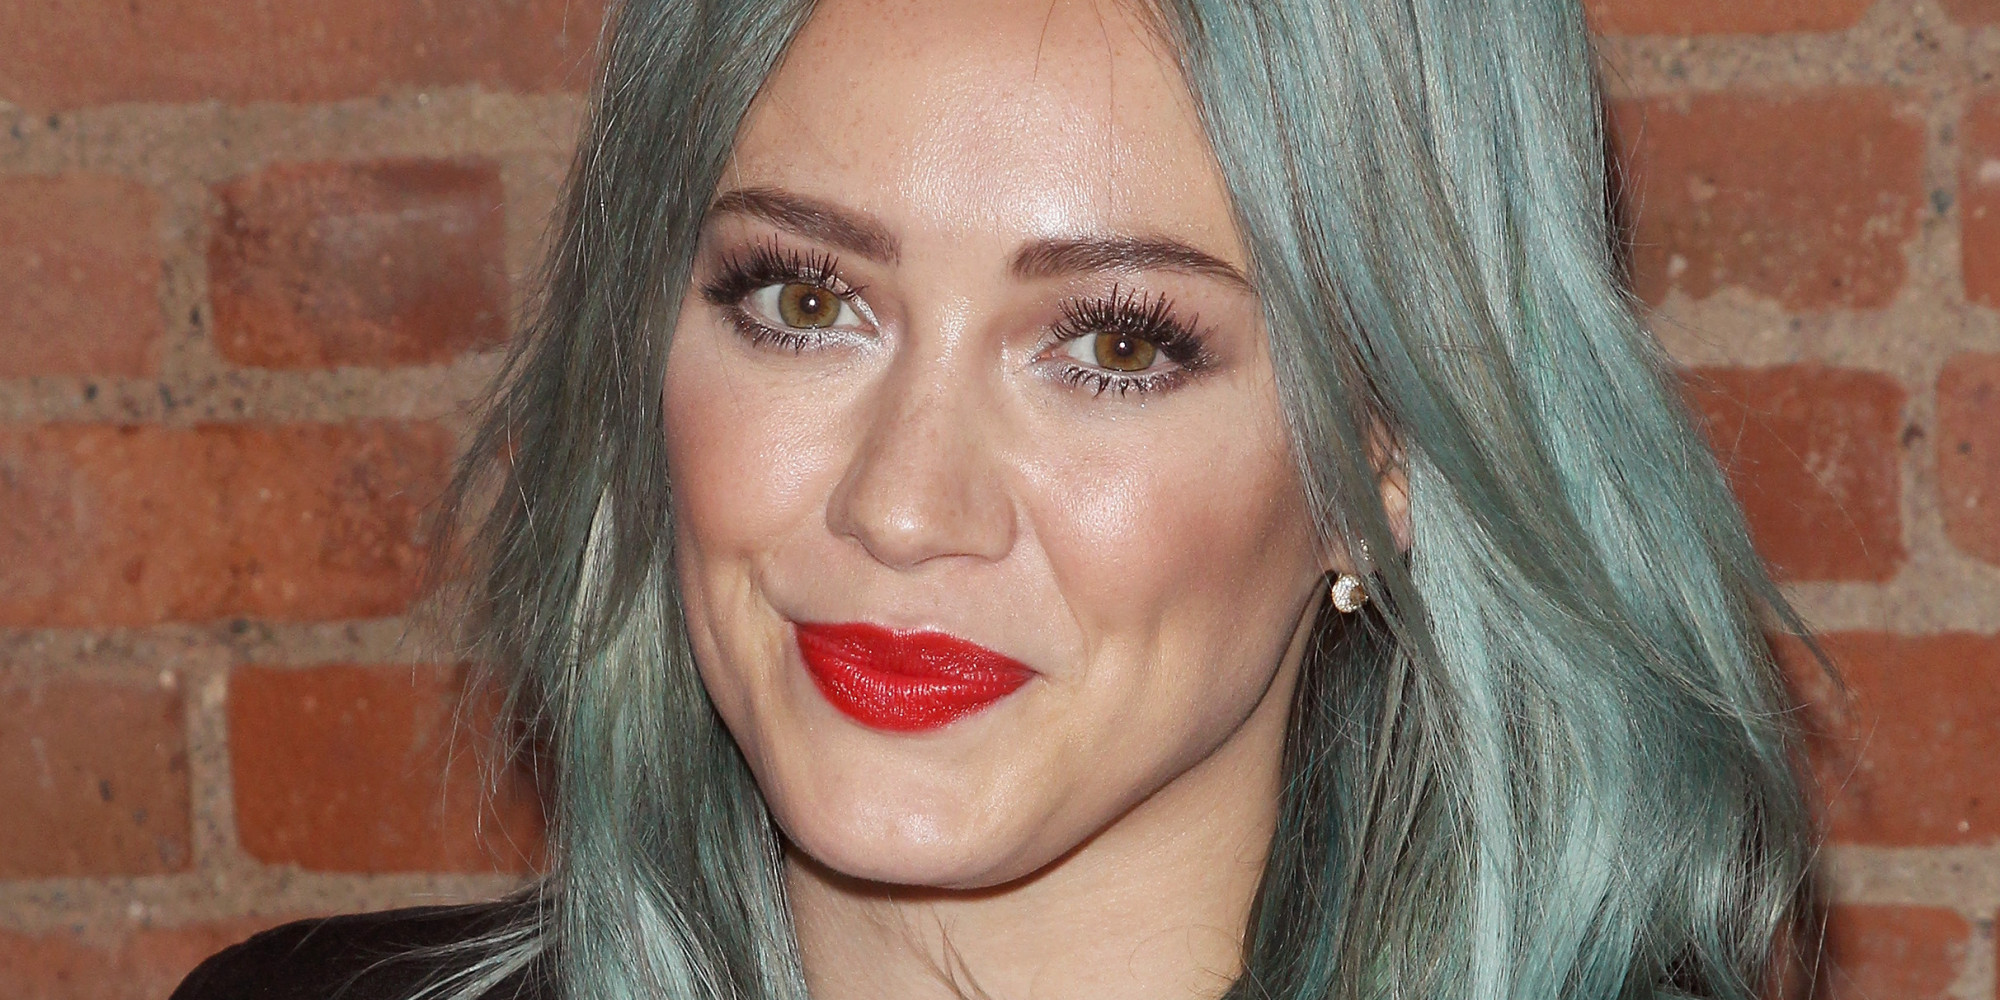 Pin Hilary Duff Facebook Cover Timeline Fb on Pinterest Hilary Duff Facebook